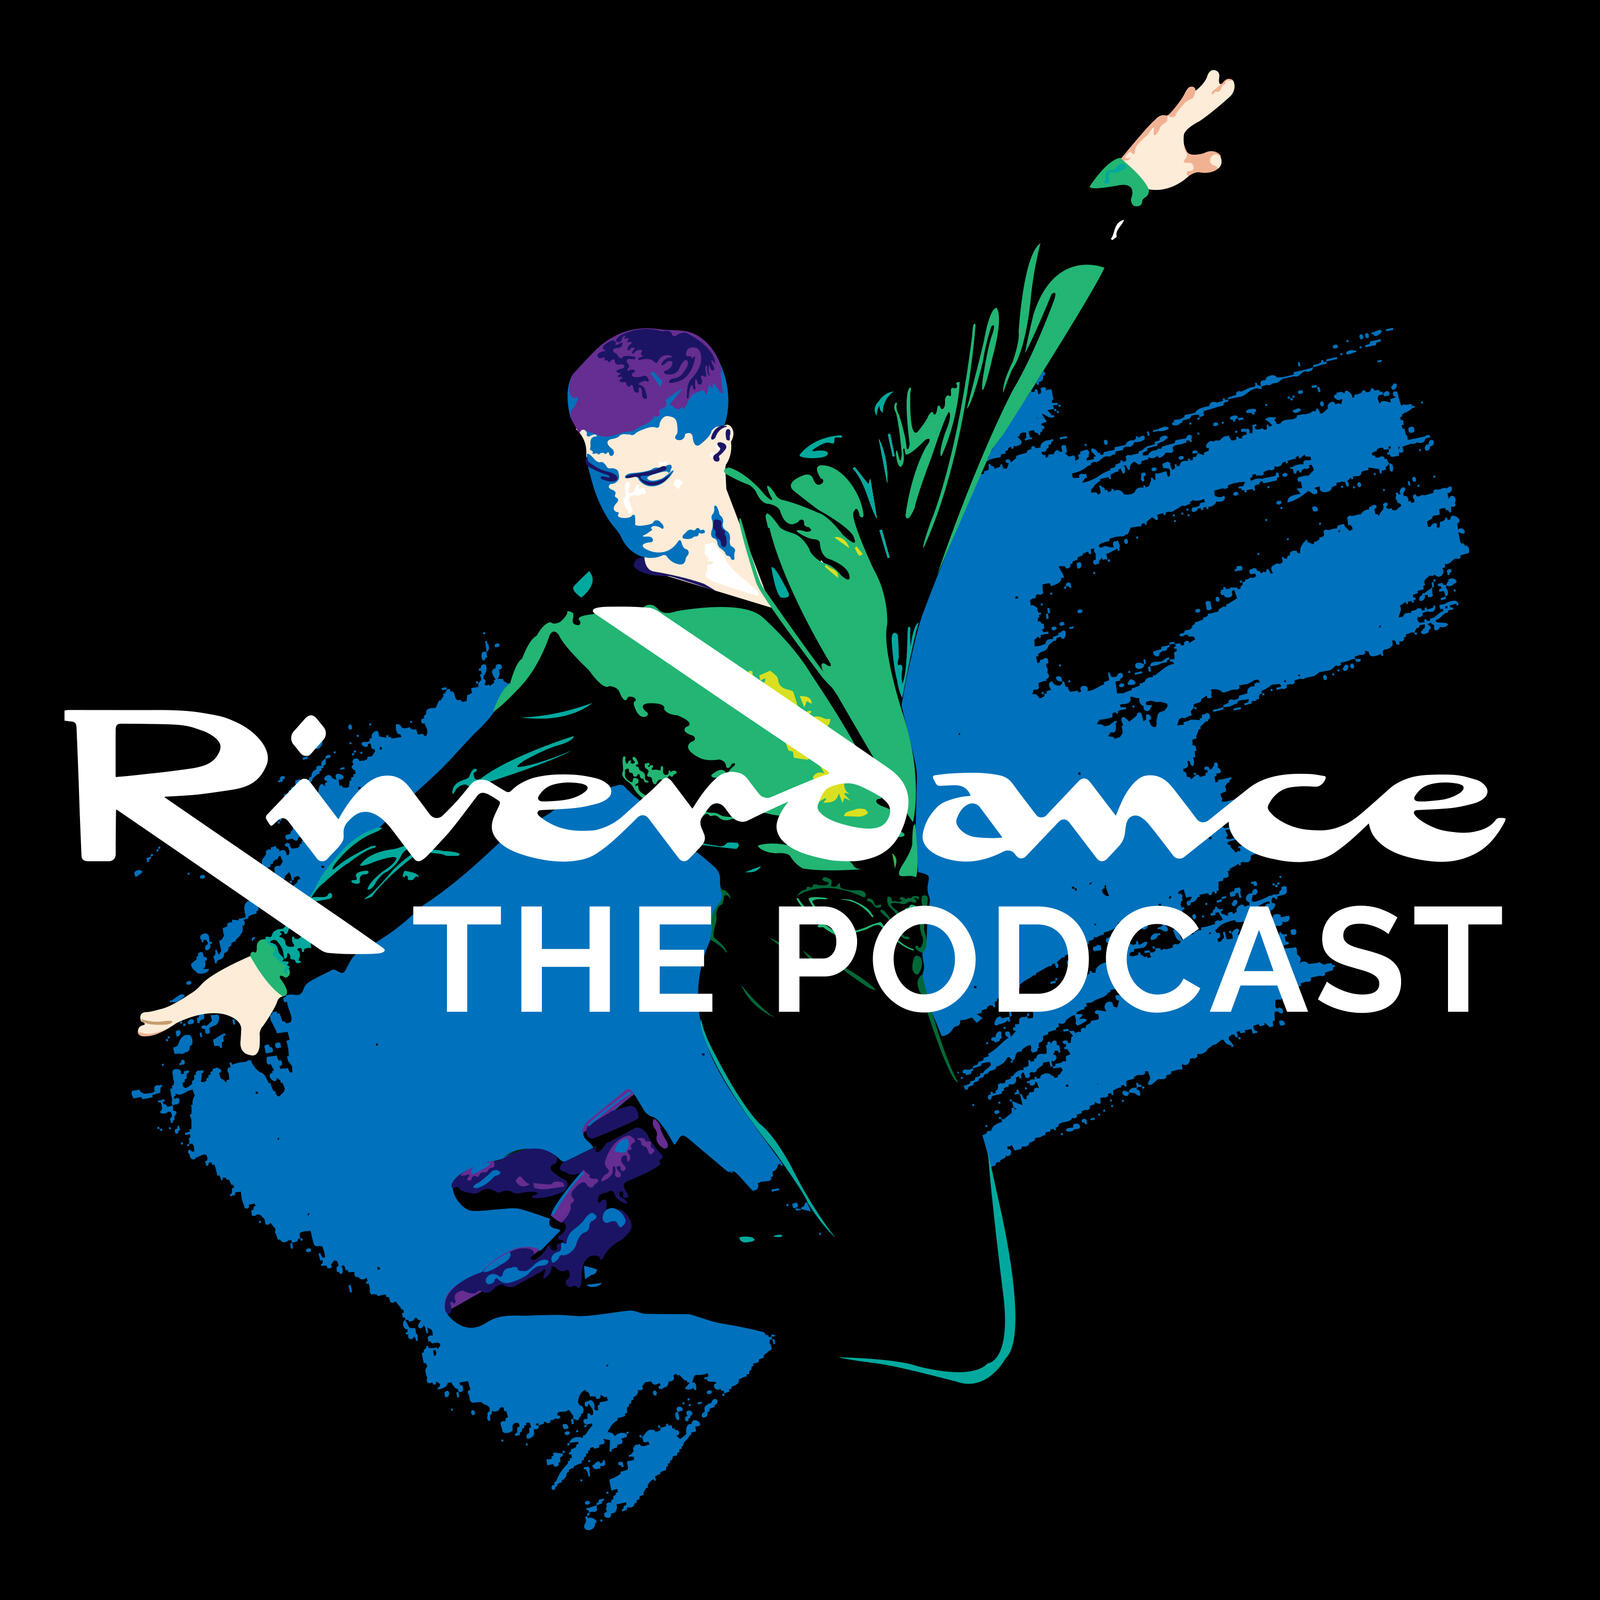 Riverdance the Podcast